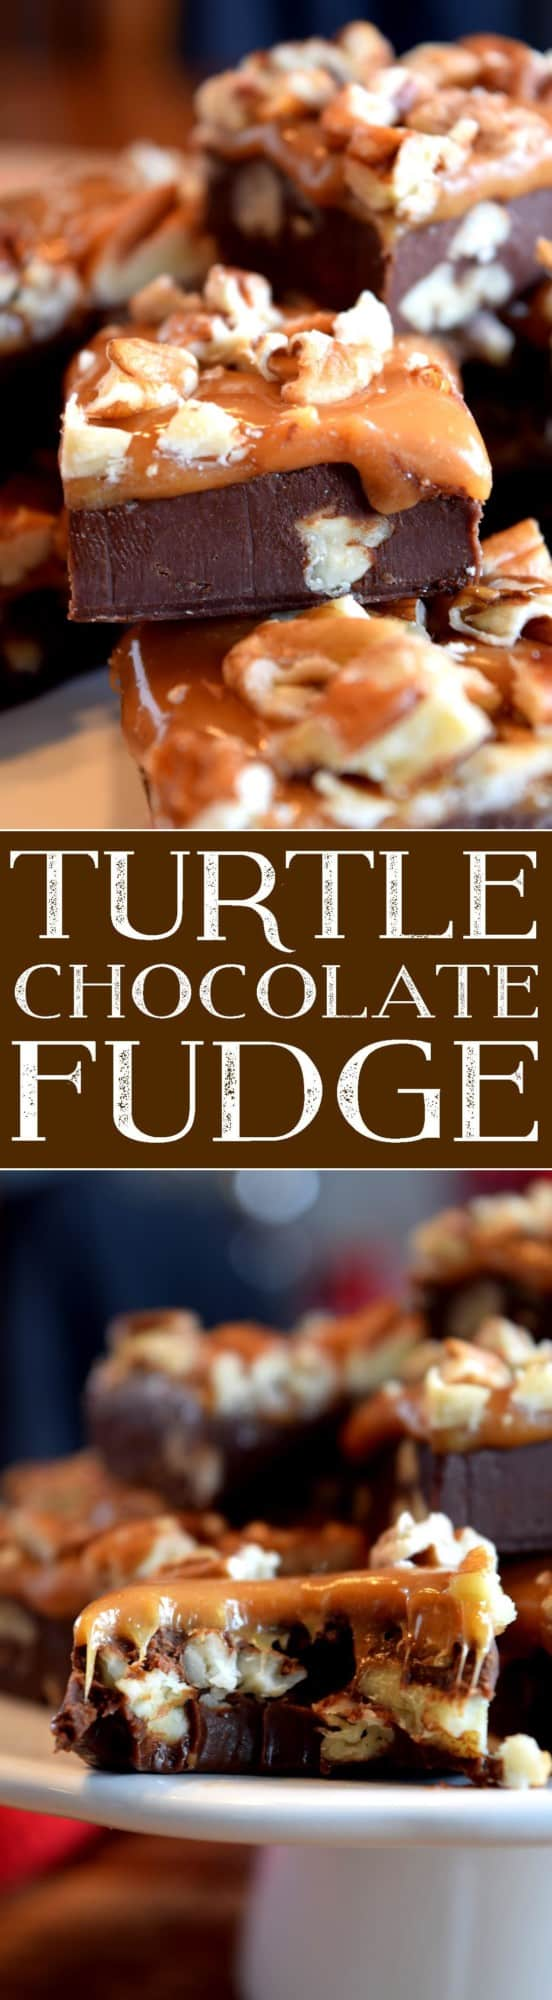 turtle-chocolate-fudge